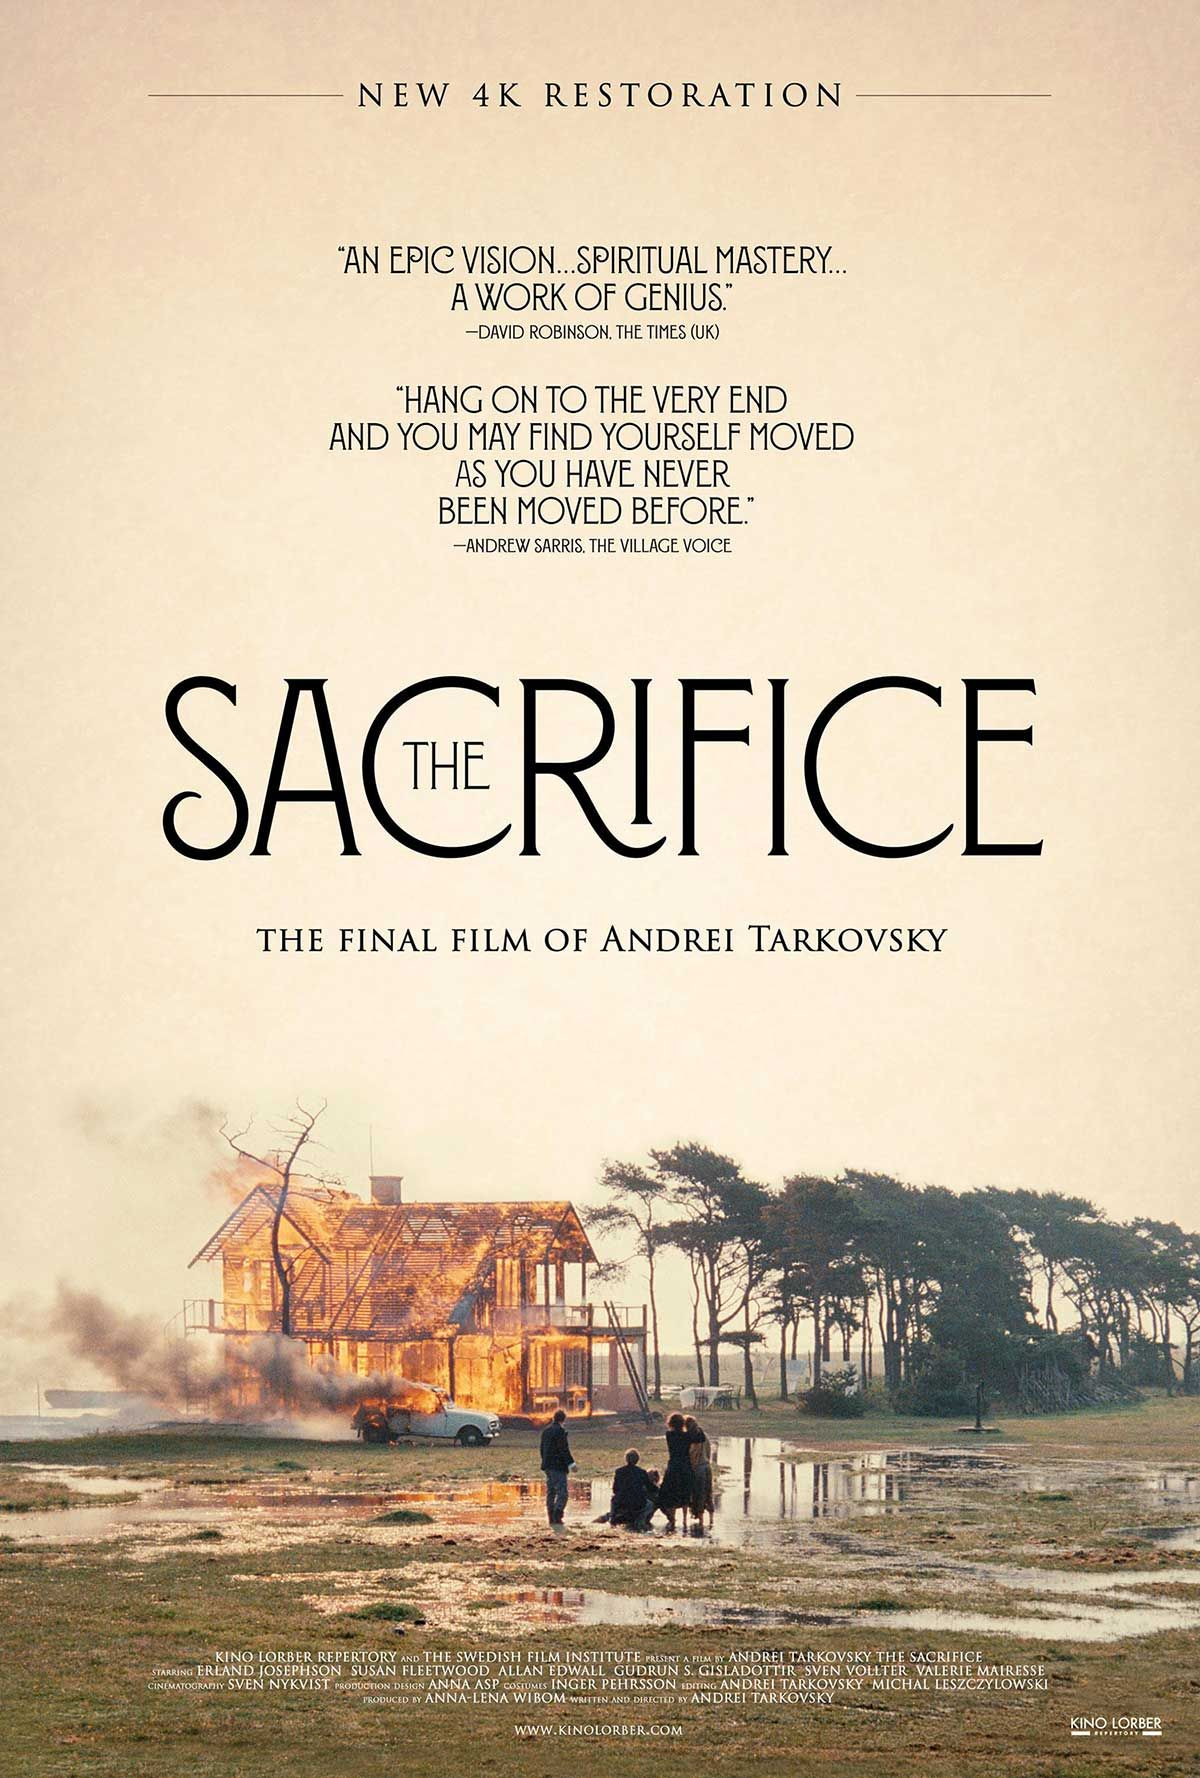 The Sacrifice Poster | Iconic Movies | Pinterest | Cinema, Movie and ...